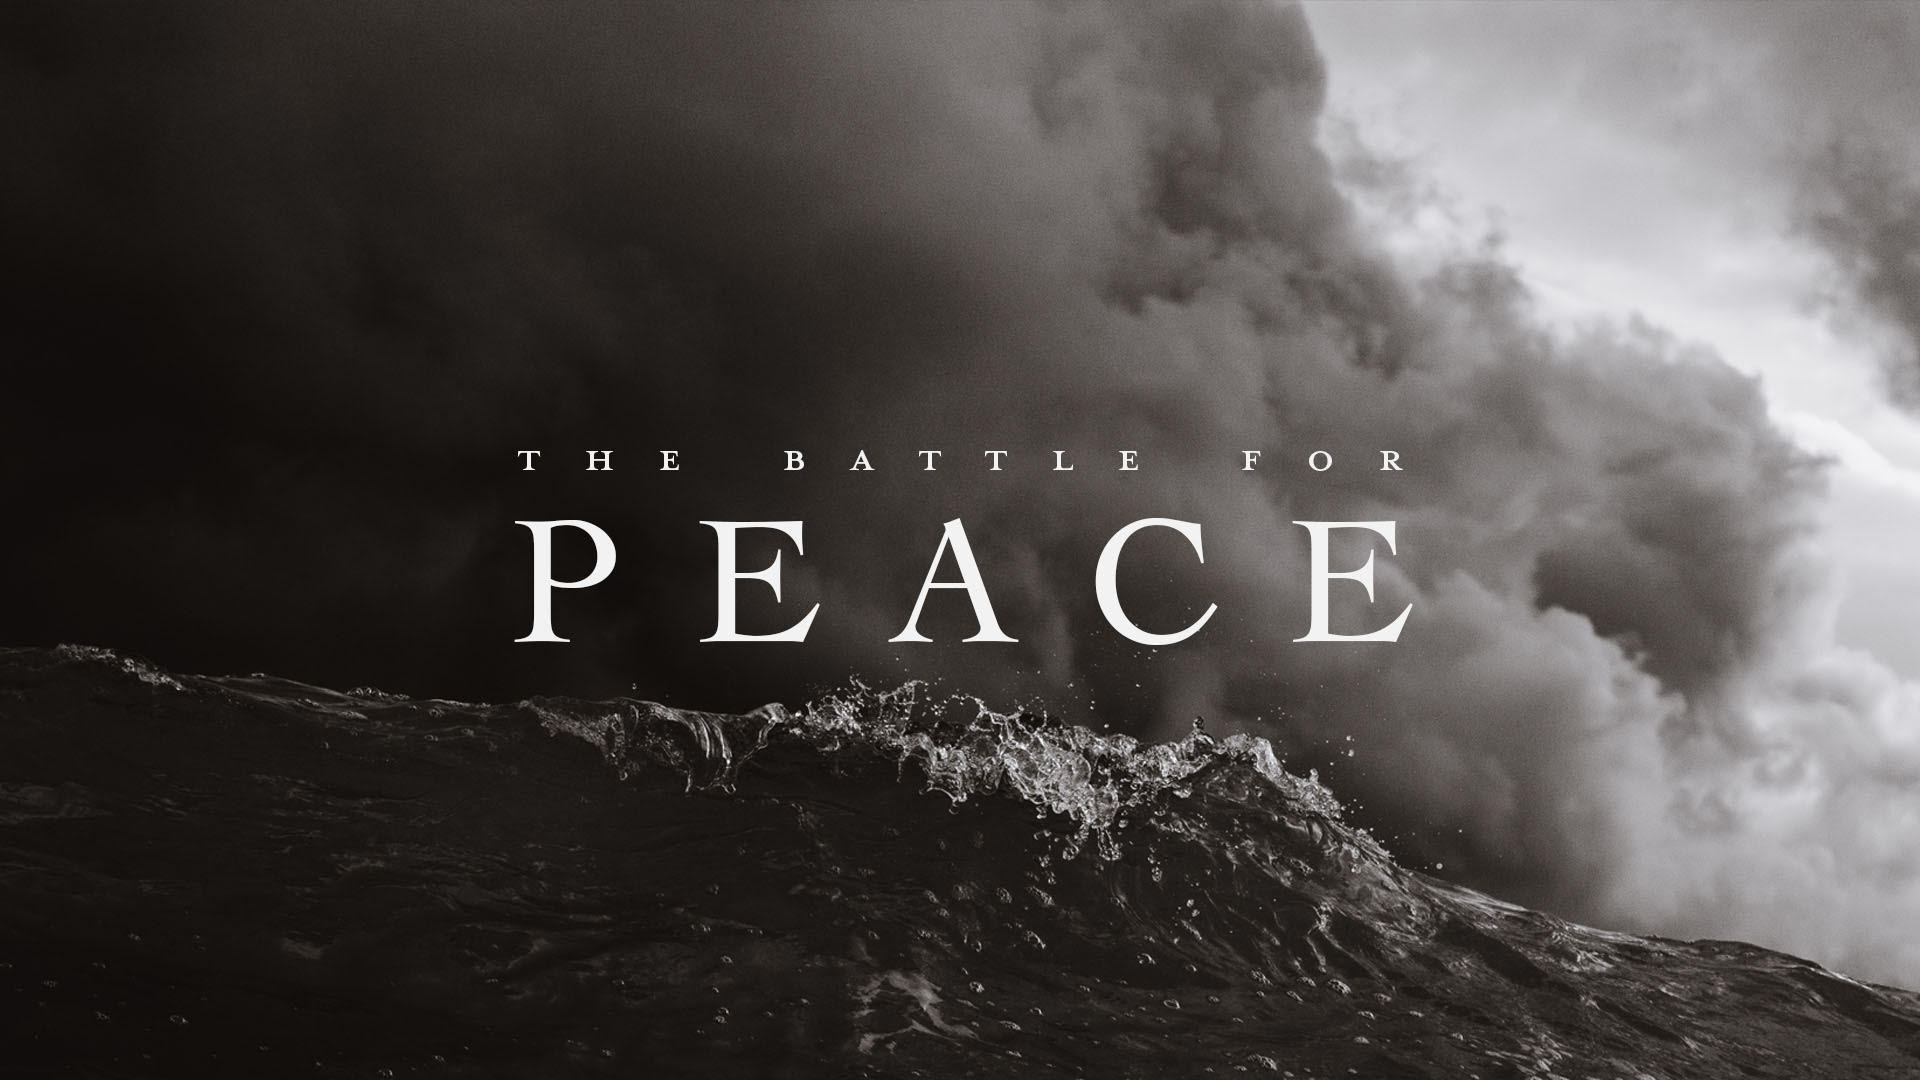 The Battle for Peace - 1. Peace is a Person2. Turning Anxiety into Prayer3. The Power of Gratitude4. Thinking About What You're Thinking About